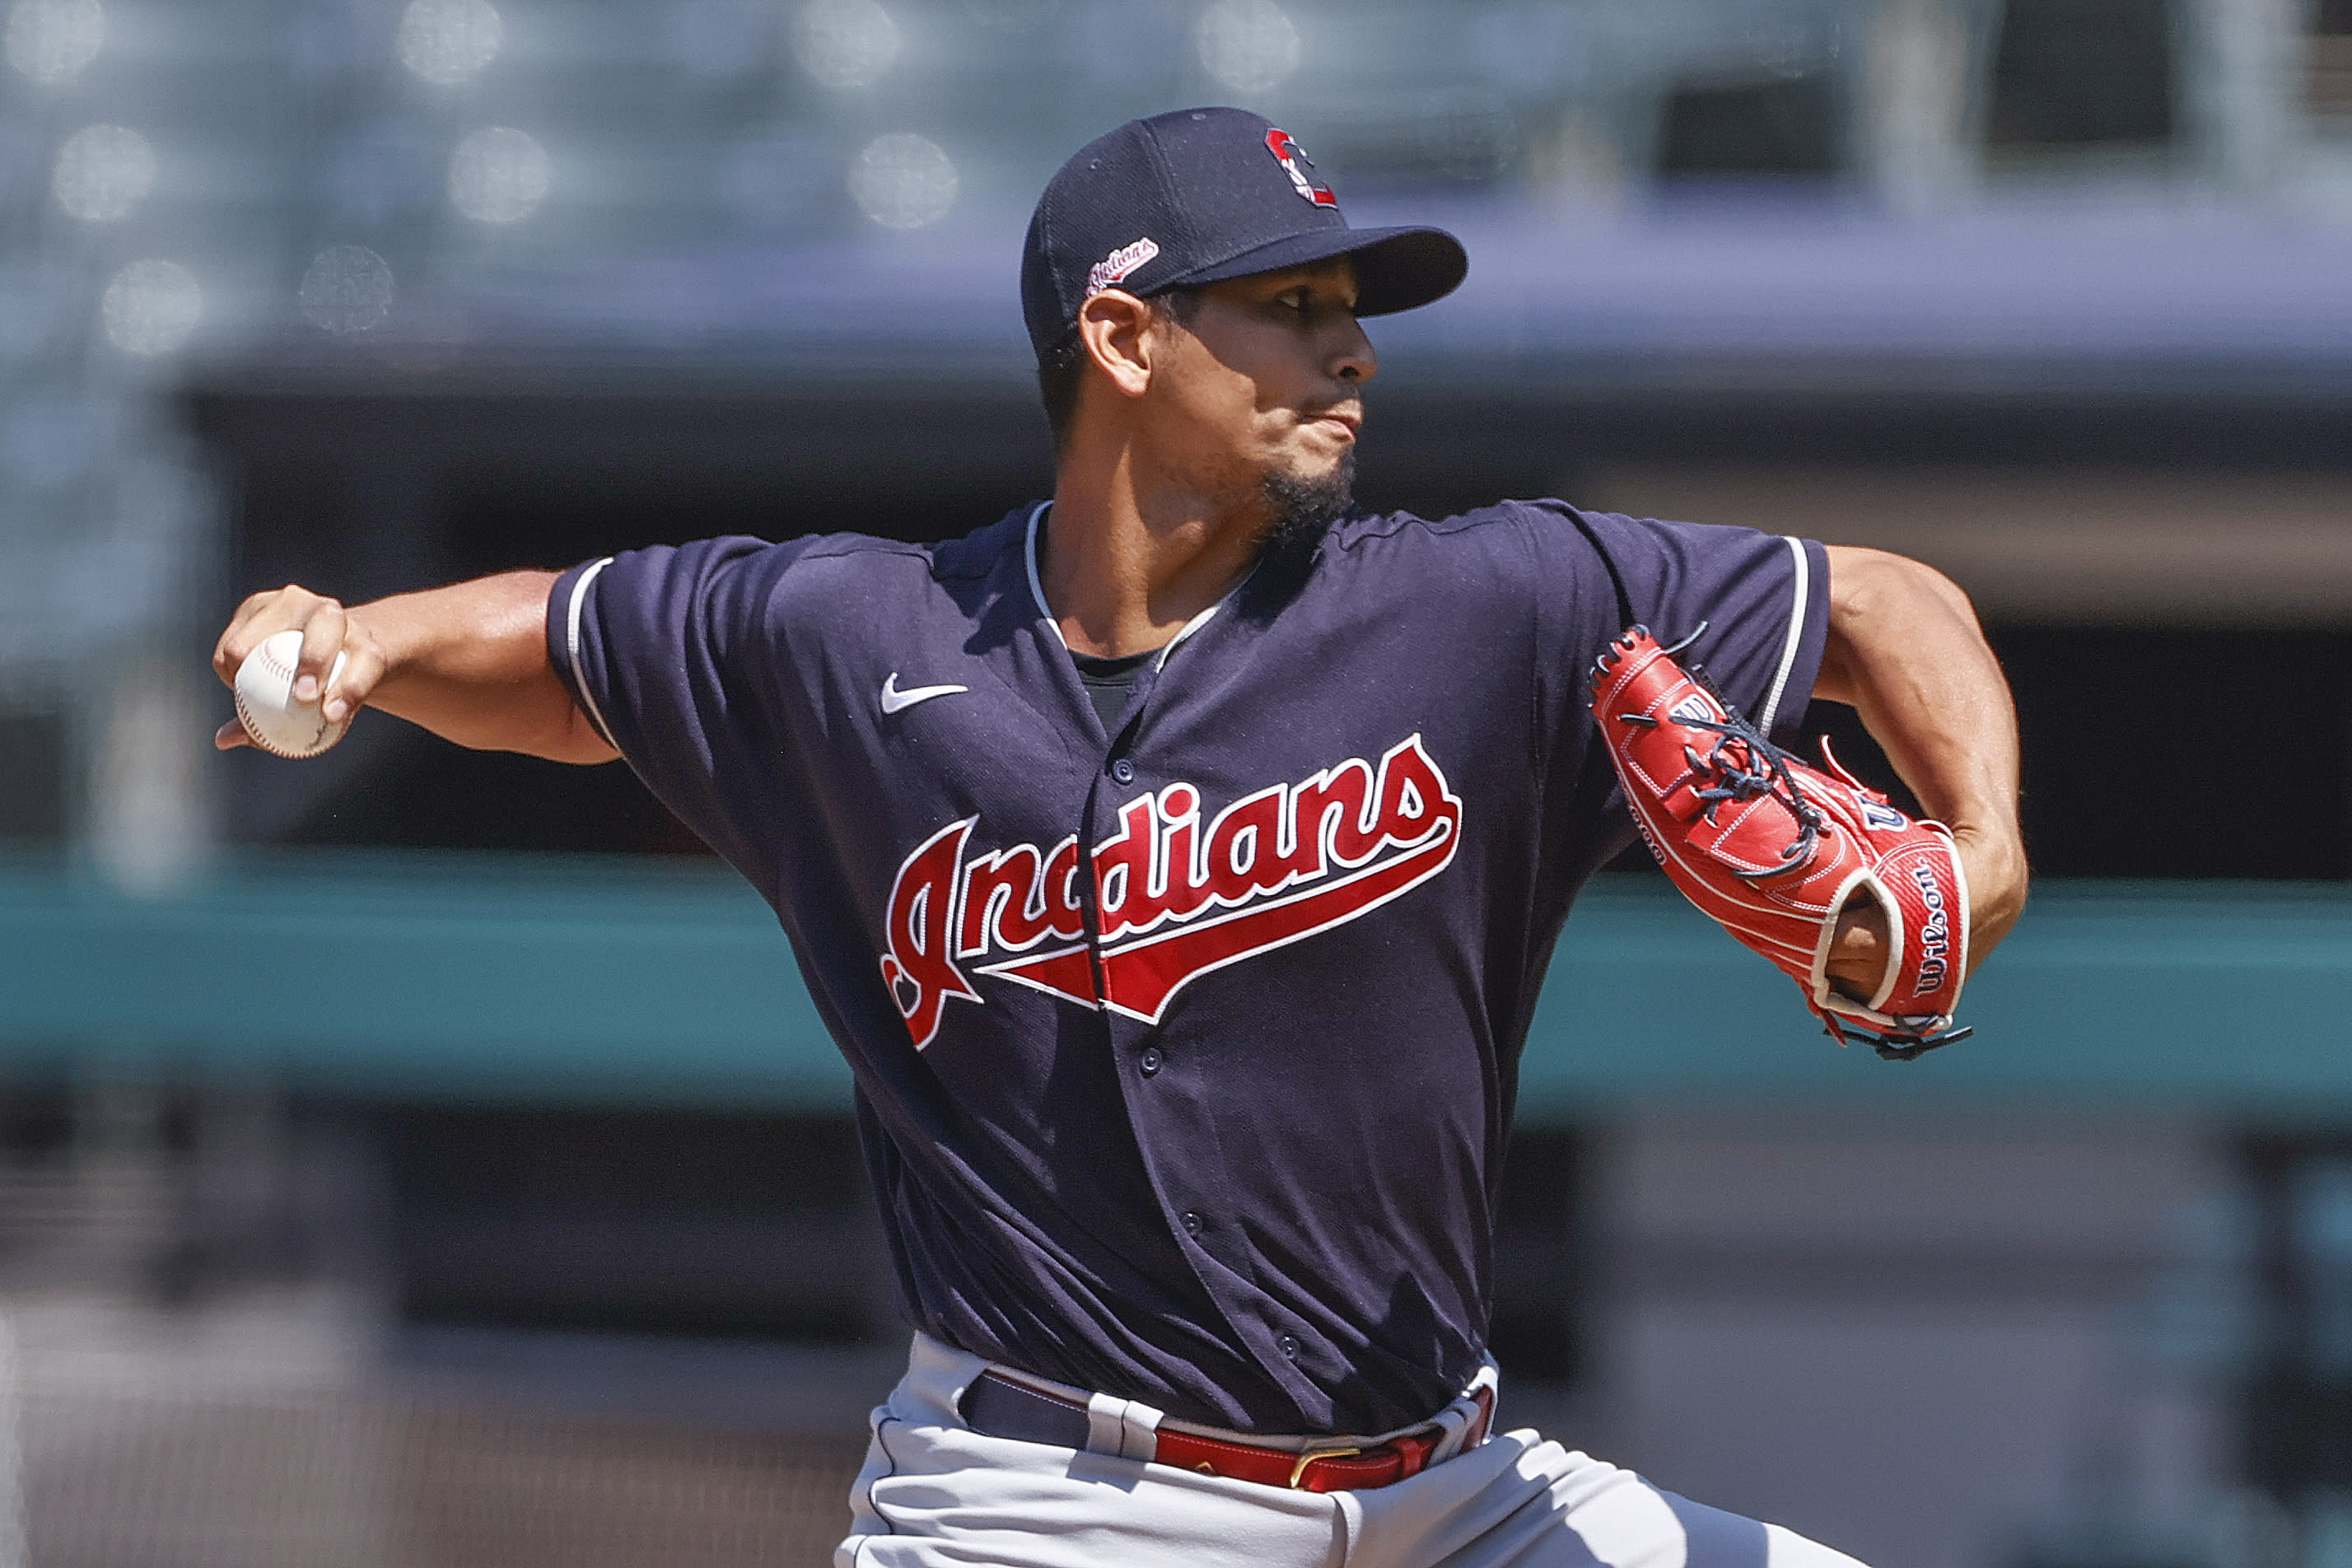 Cleveland Indians starting pitcher Carlos Carrasco delivers during baseball practice, Monday, July 6, 2020, in Cleveland. (AP Photo/Ron Schwane)